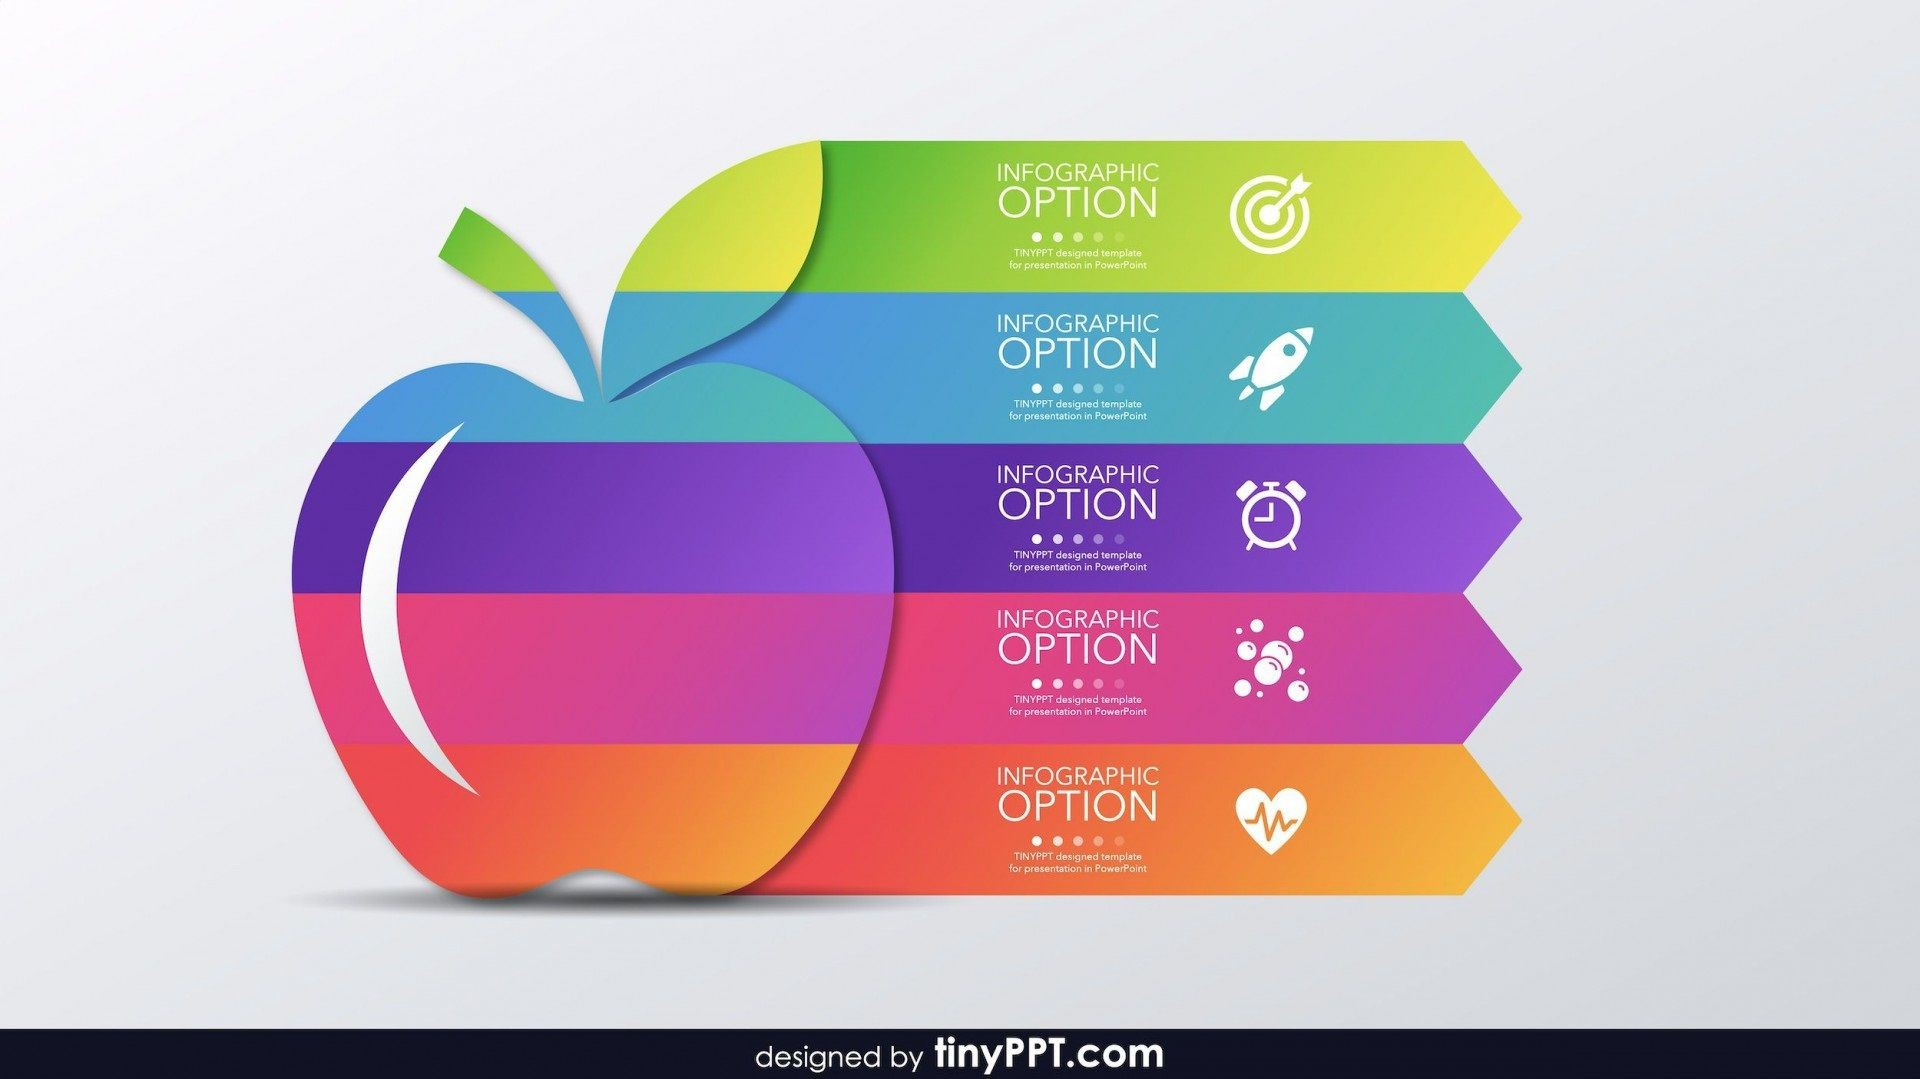 005 Wondrou 3d Animated Powerpoint Template Free Download 2010 Concept 1920